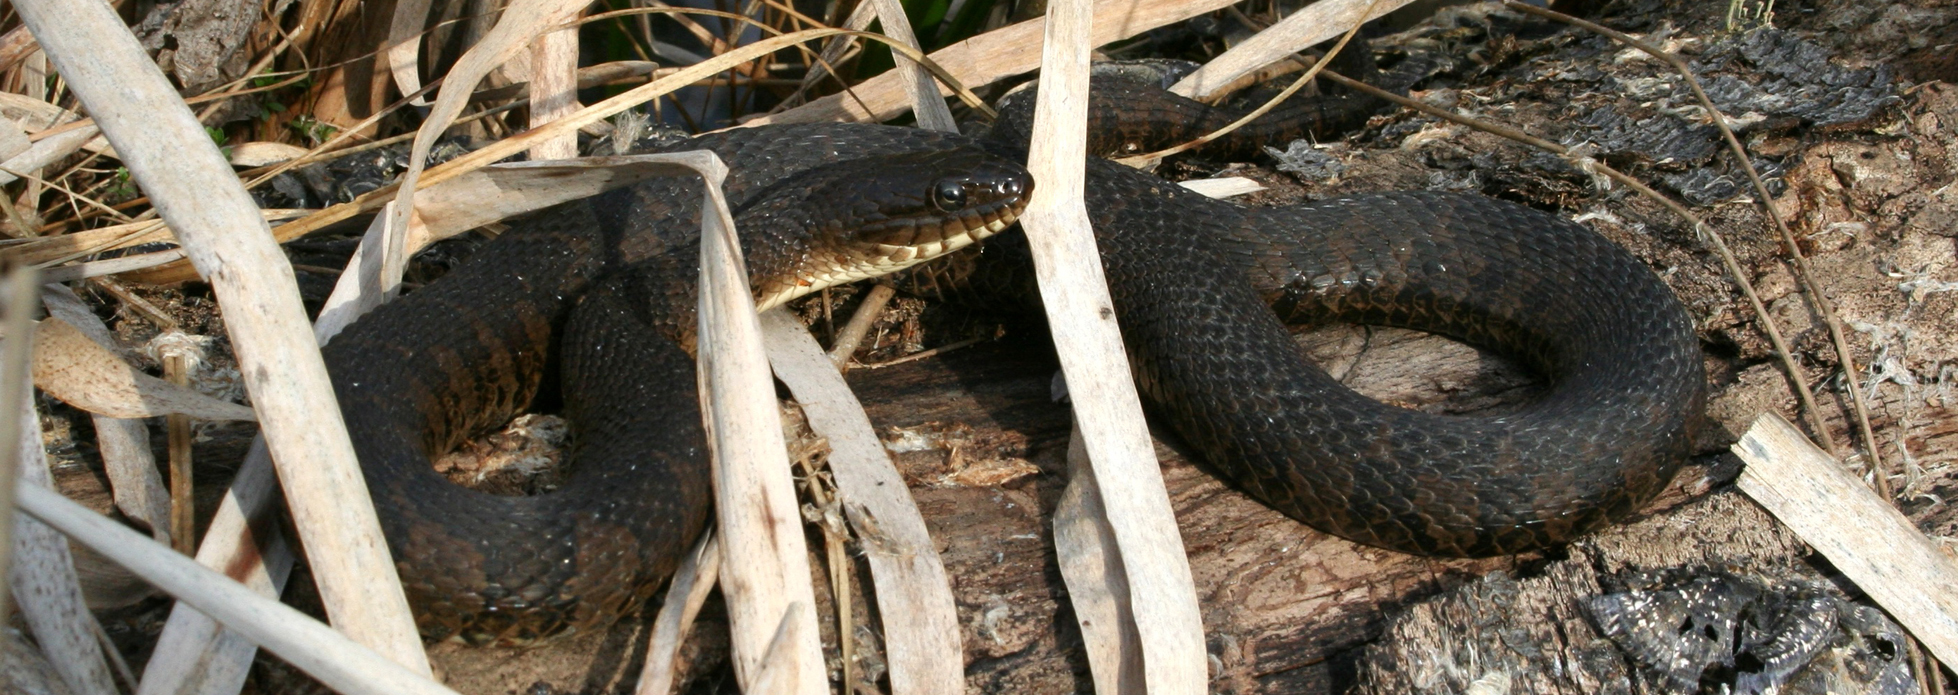 Northern Watersnake | Reptiles & Amphibians in Ontario